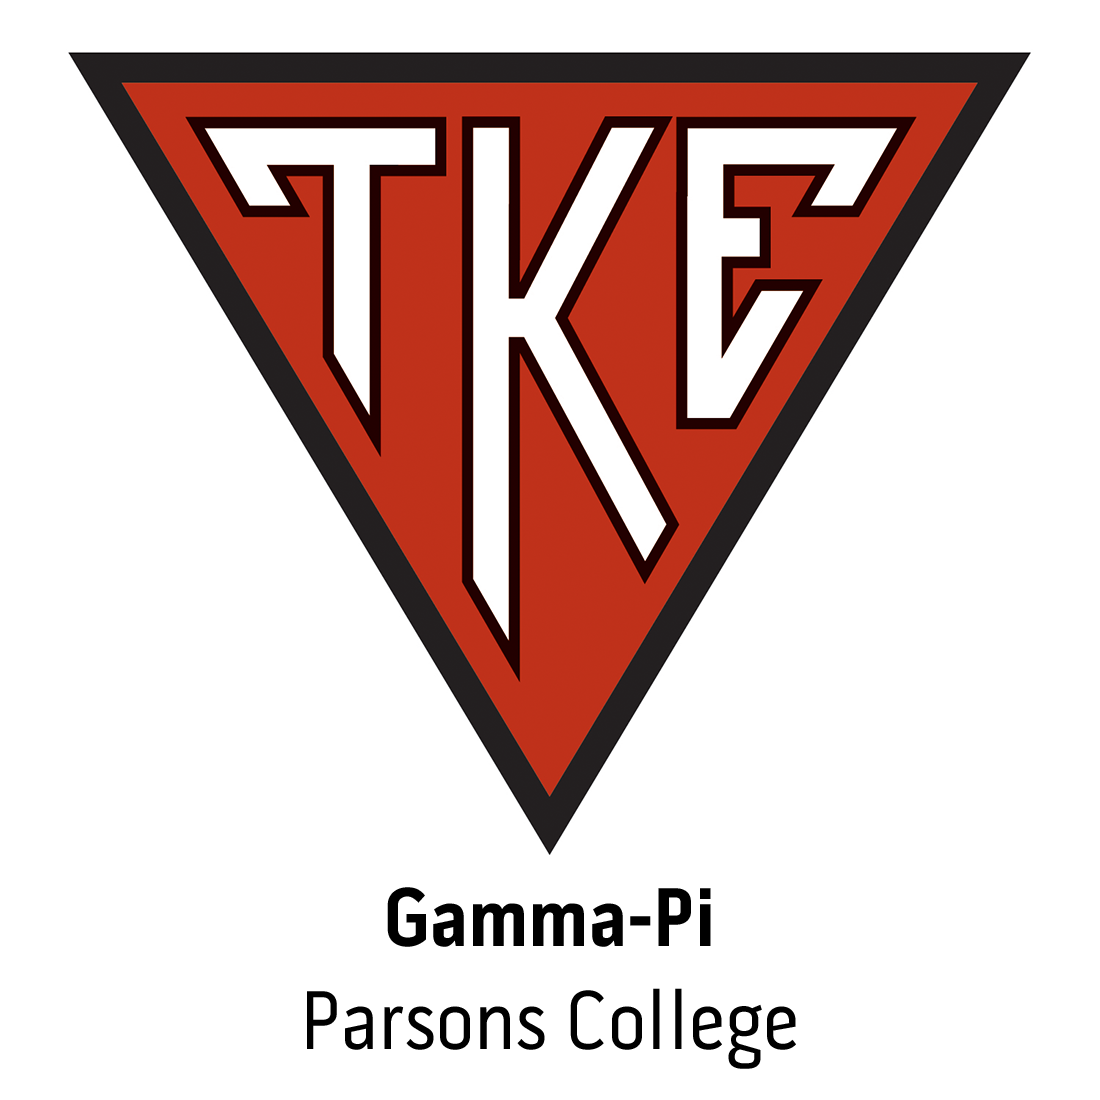 Gamma-Pi Chapter at Parsons College